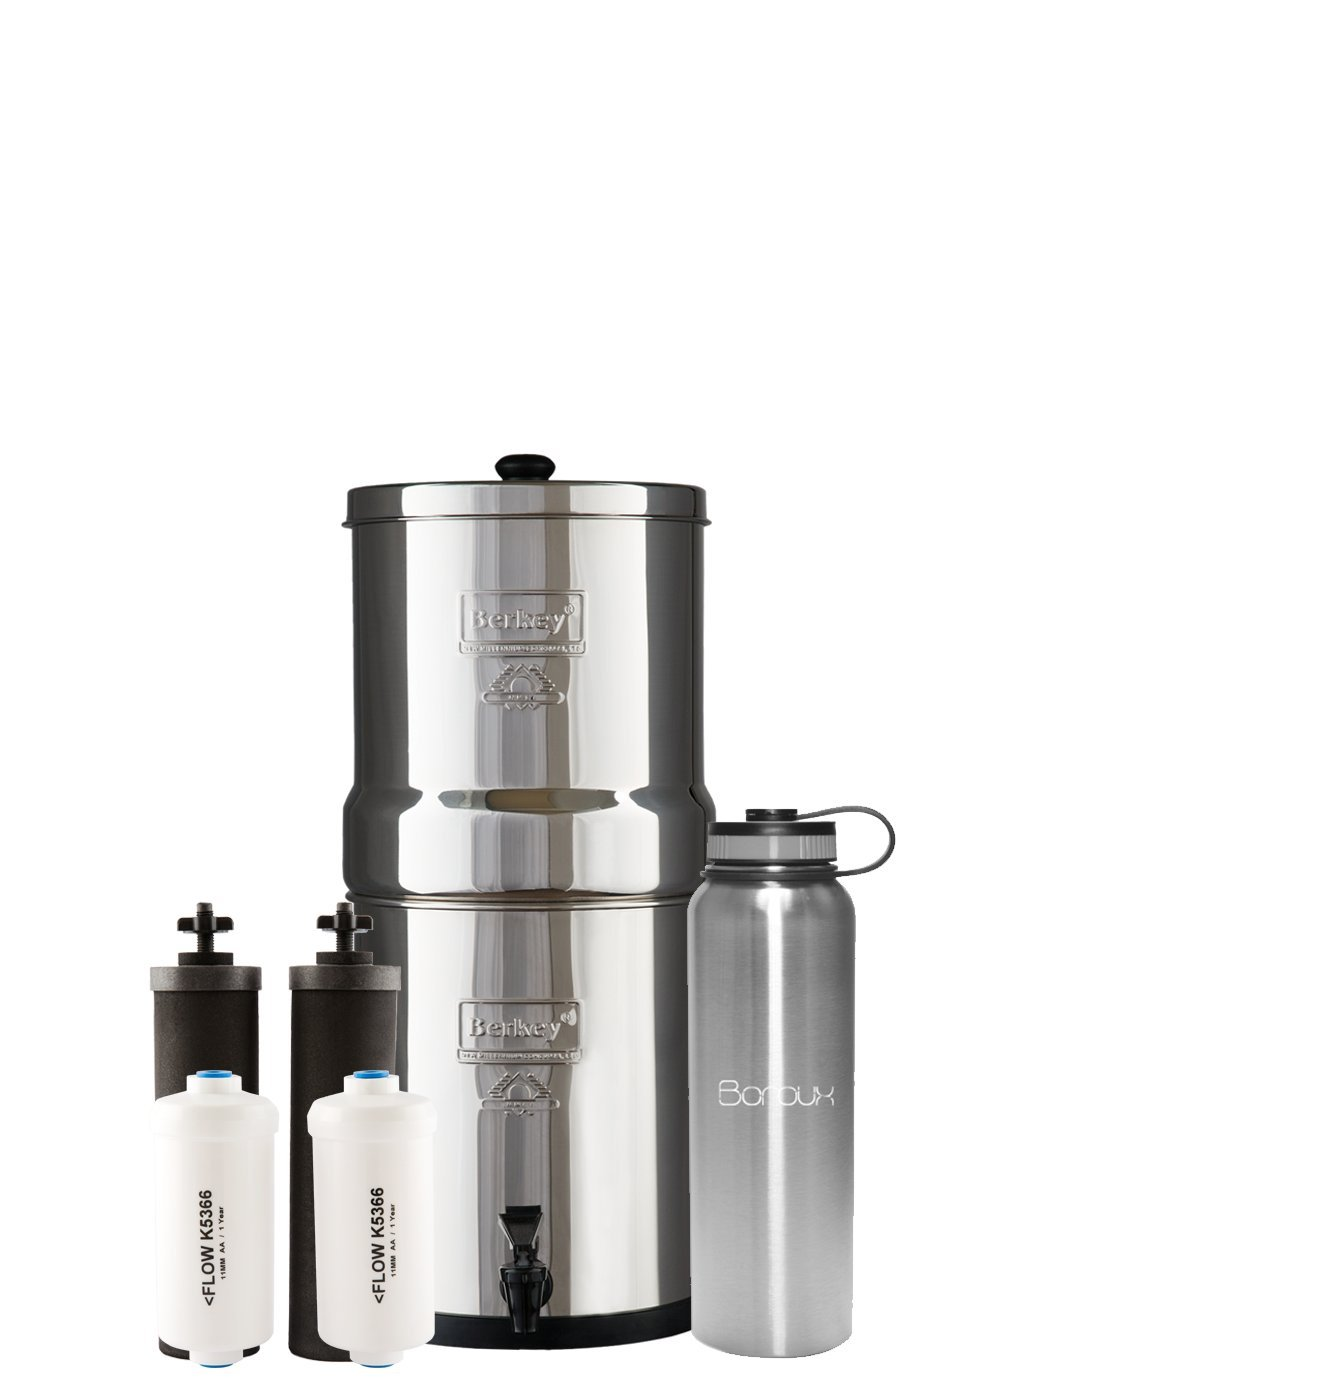 Big Berkey Water Filter System includes Black Filters and Fluoride Filters (2.25 Gallon) bundled with Boroux 40 oz Stainless Steel Double Wall Bottle